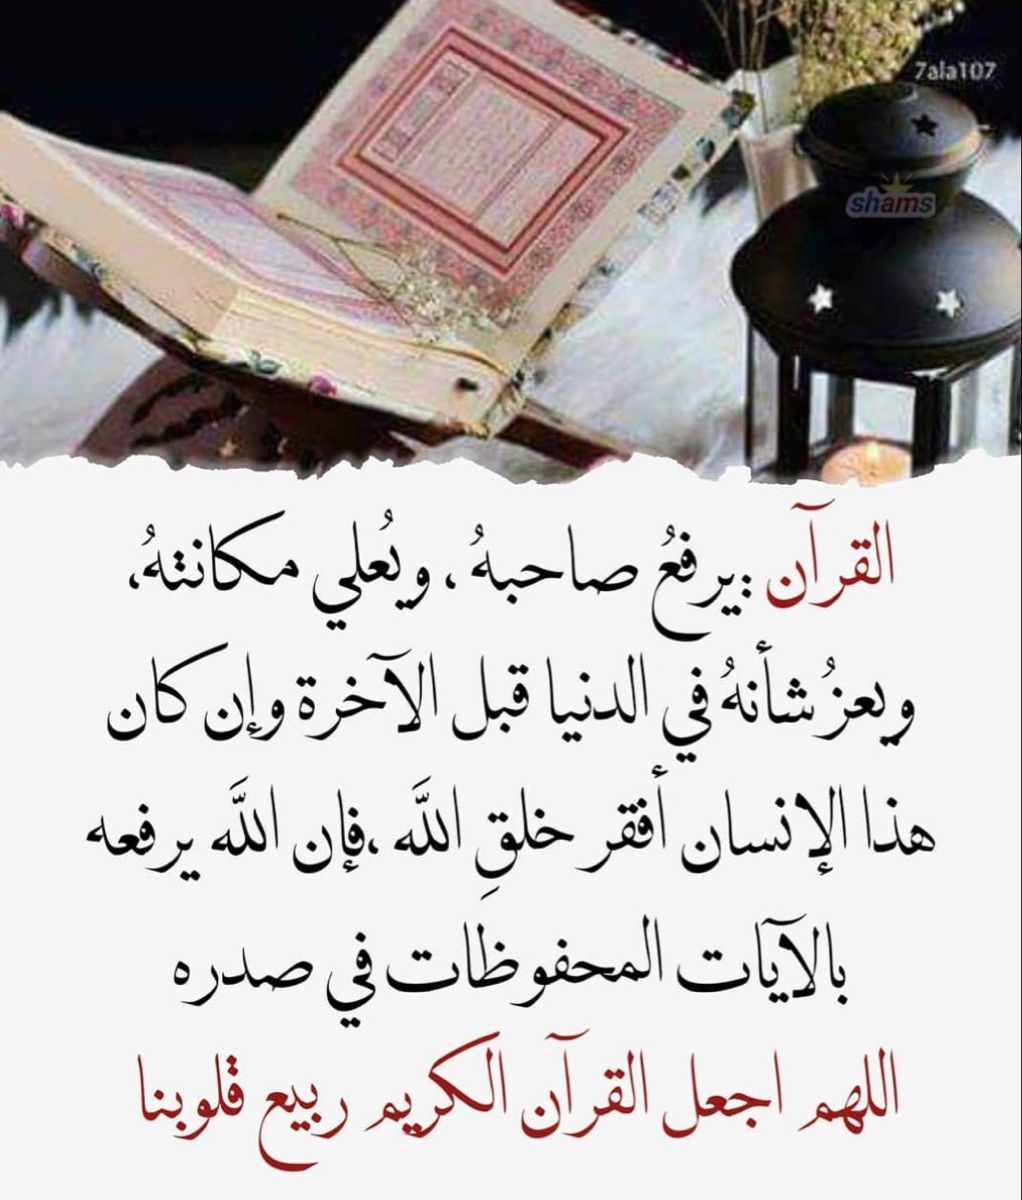 Pin By Maria Trifhat On كن متفائلا تكن سعيدا Quotes Quran Arabic Calligraphy